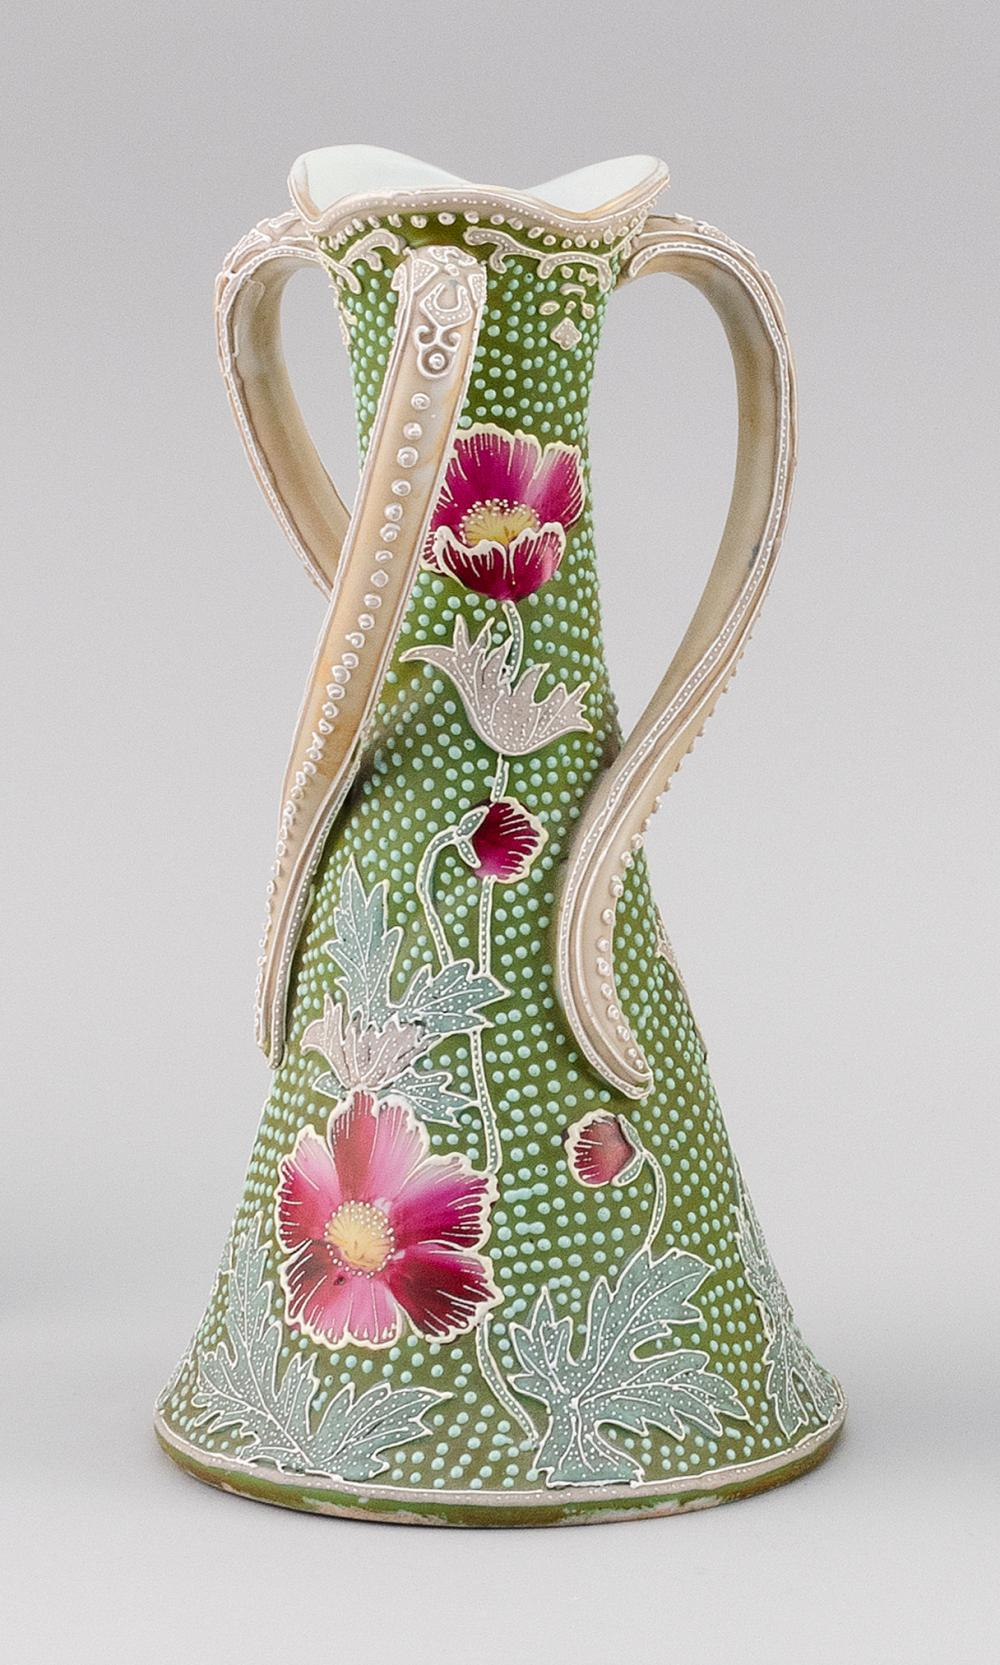 MORIAGE NIPPON PORCELAIN VASE Conical, with three twisting handles and a floral design. Spotted with jewel-like markings. Height 10